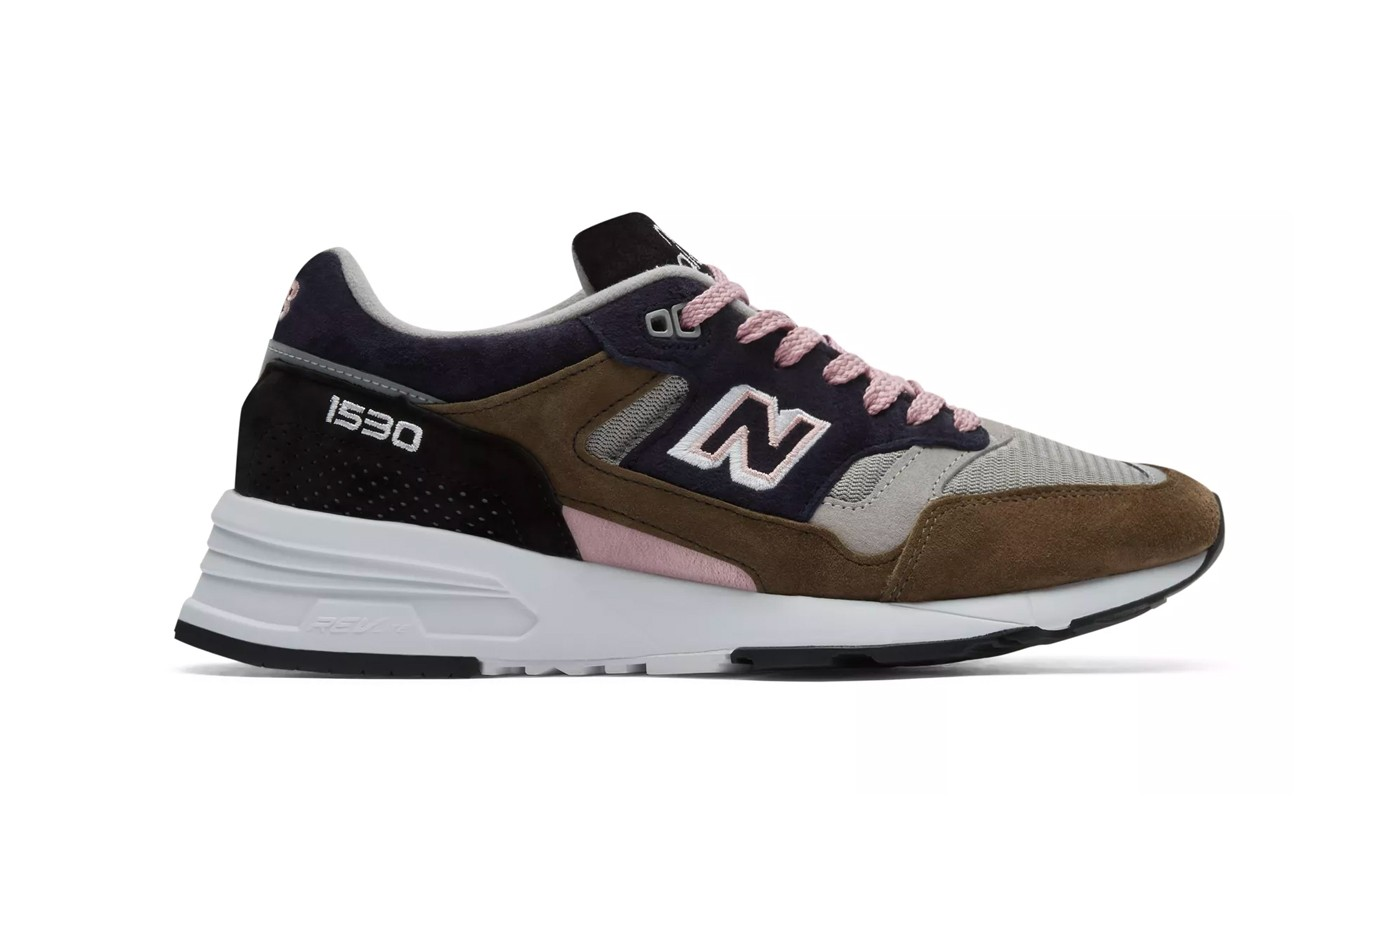 new balance New Balance UK 1530 in Earthy 'Soft Haze' Palettes https   hypebeast